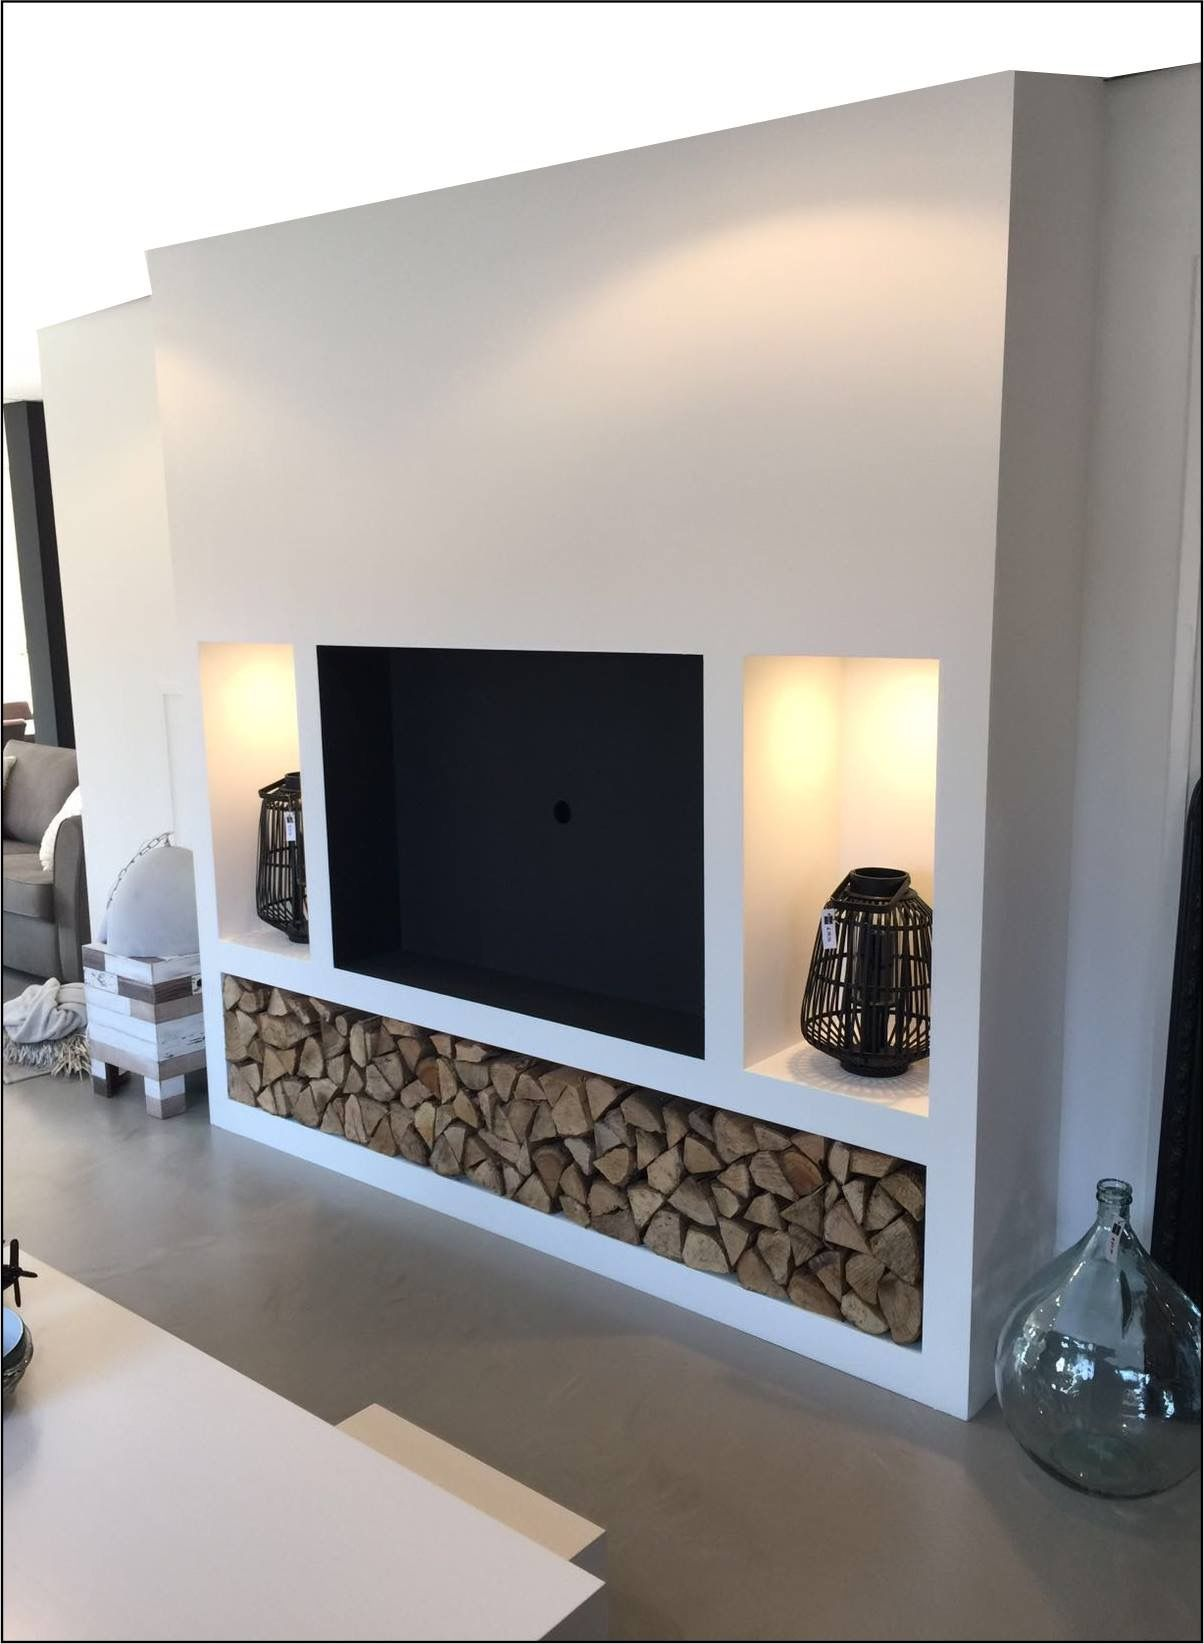 Tv Wand Huis Idees In 2019 Tv Wall Decor Living Room Room